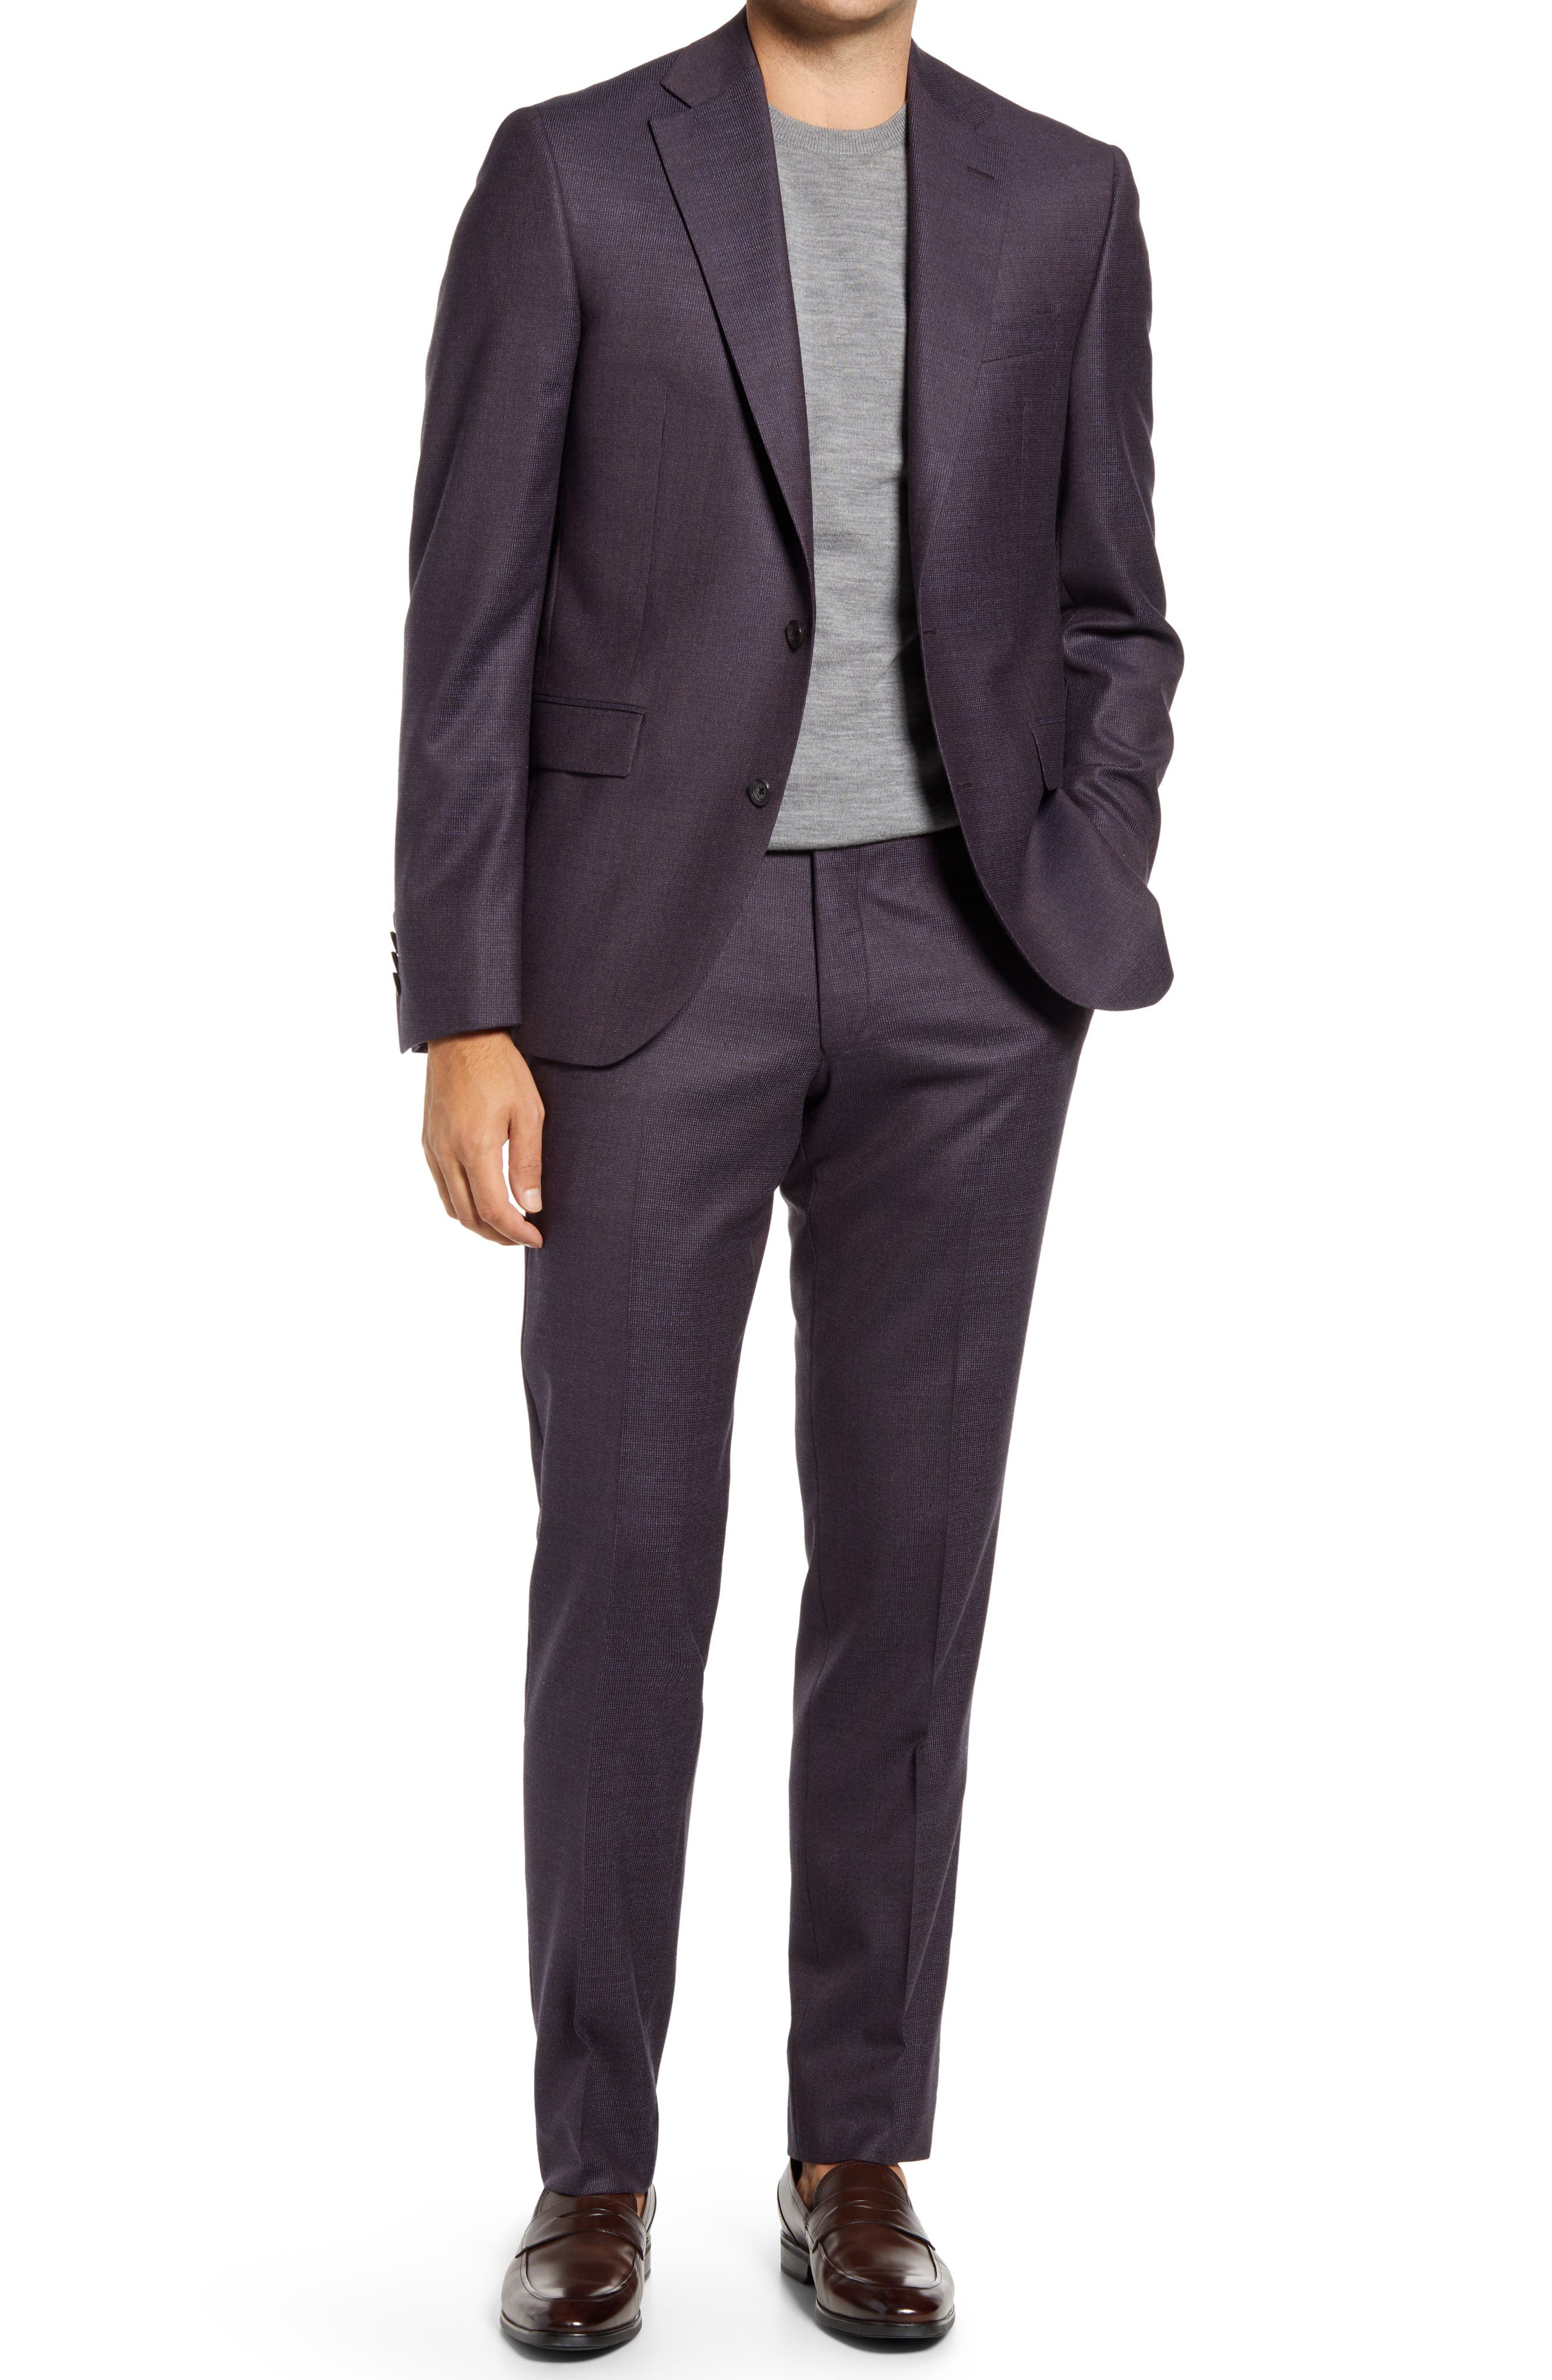 Esprit Contemporary Fit Berry Tick Weave Stretch Wool Suit